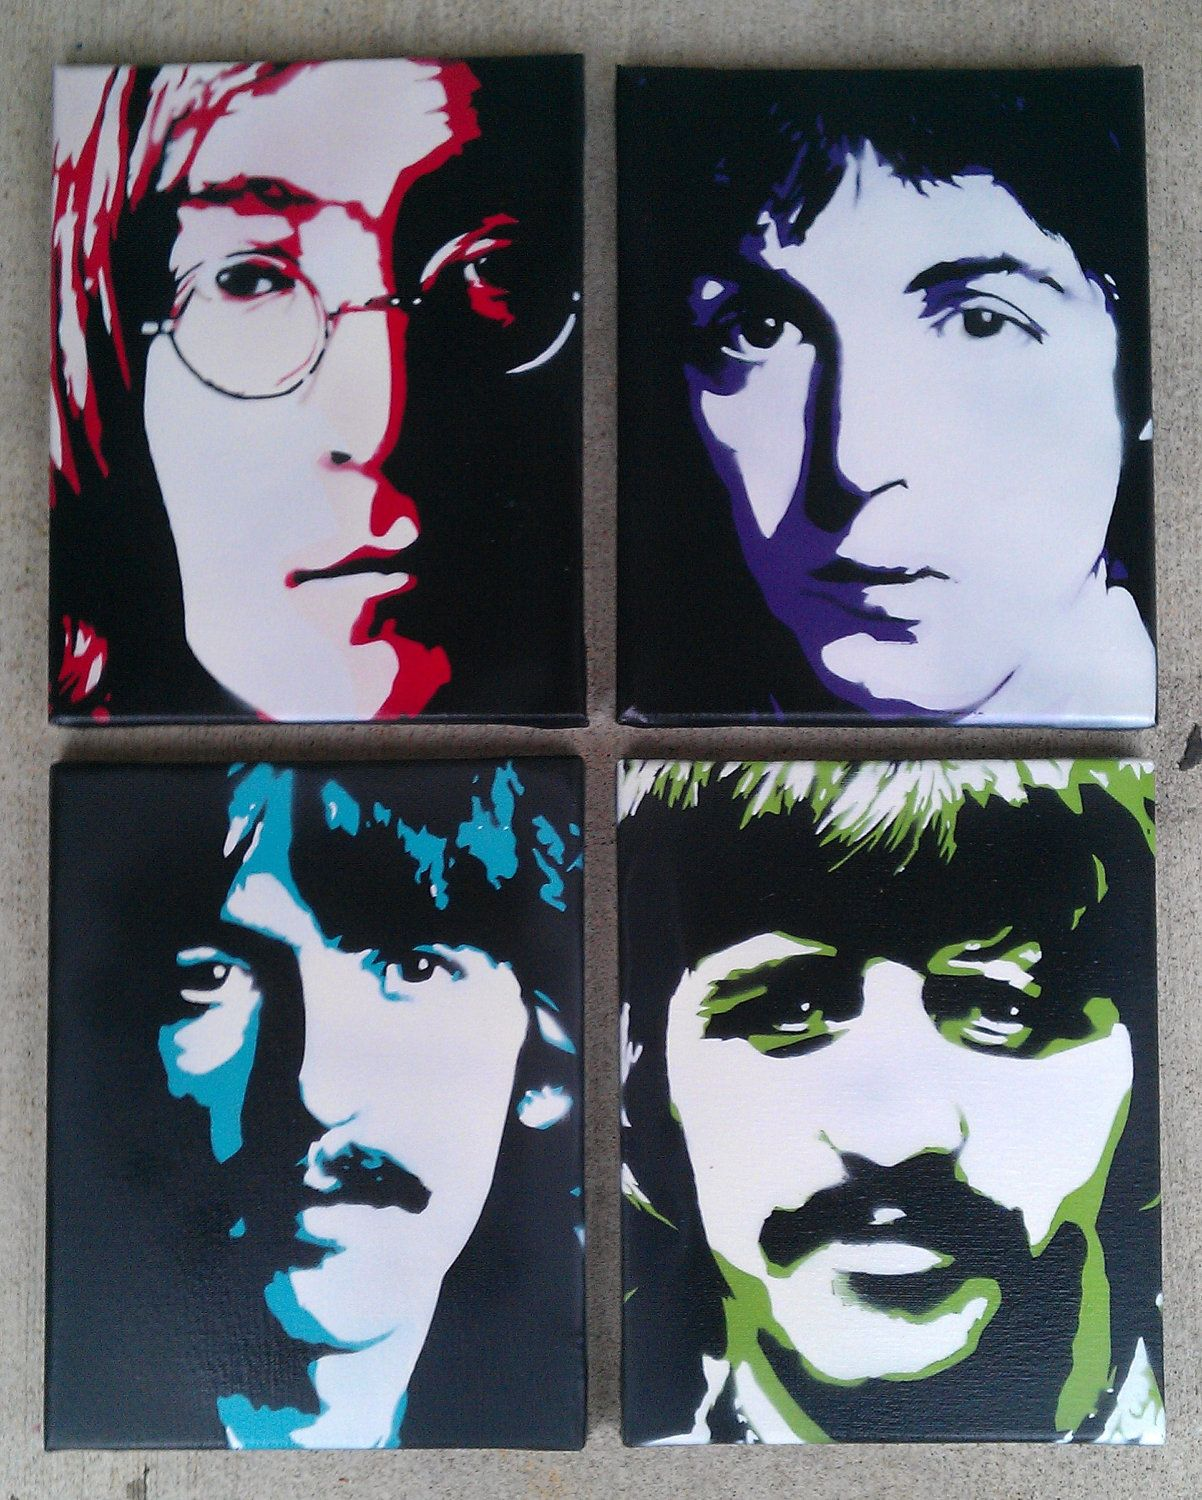 The Beatles - Set of 4, 8x10 inch Pop Art, Stencil Art Portraits on Stretched Canvas. $60.00, via Etsy.